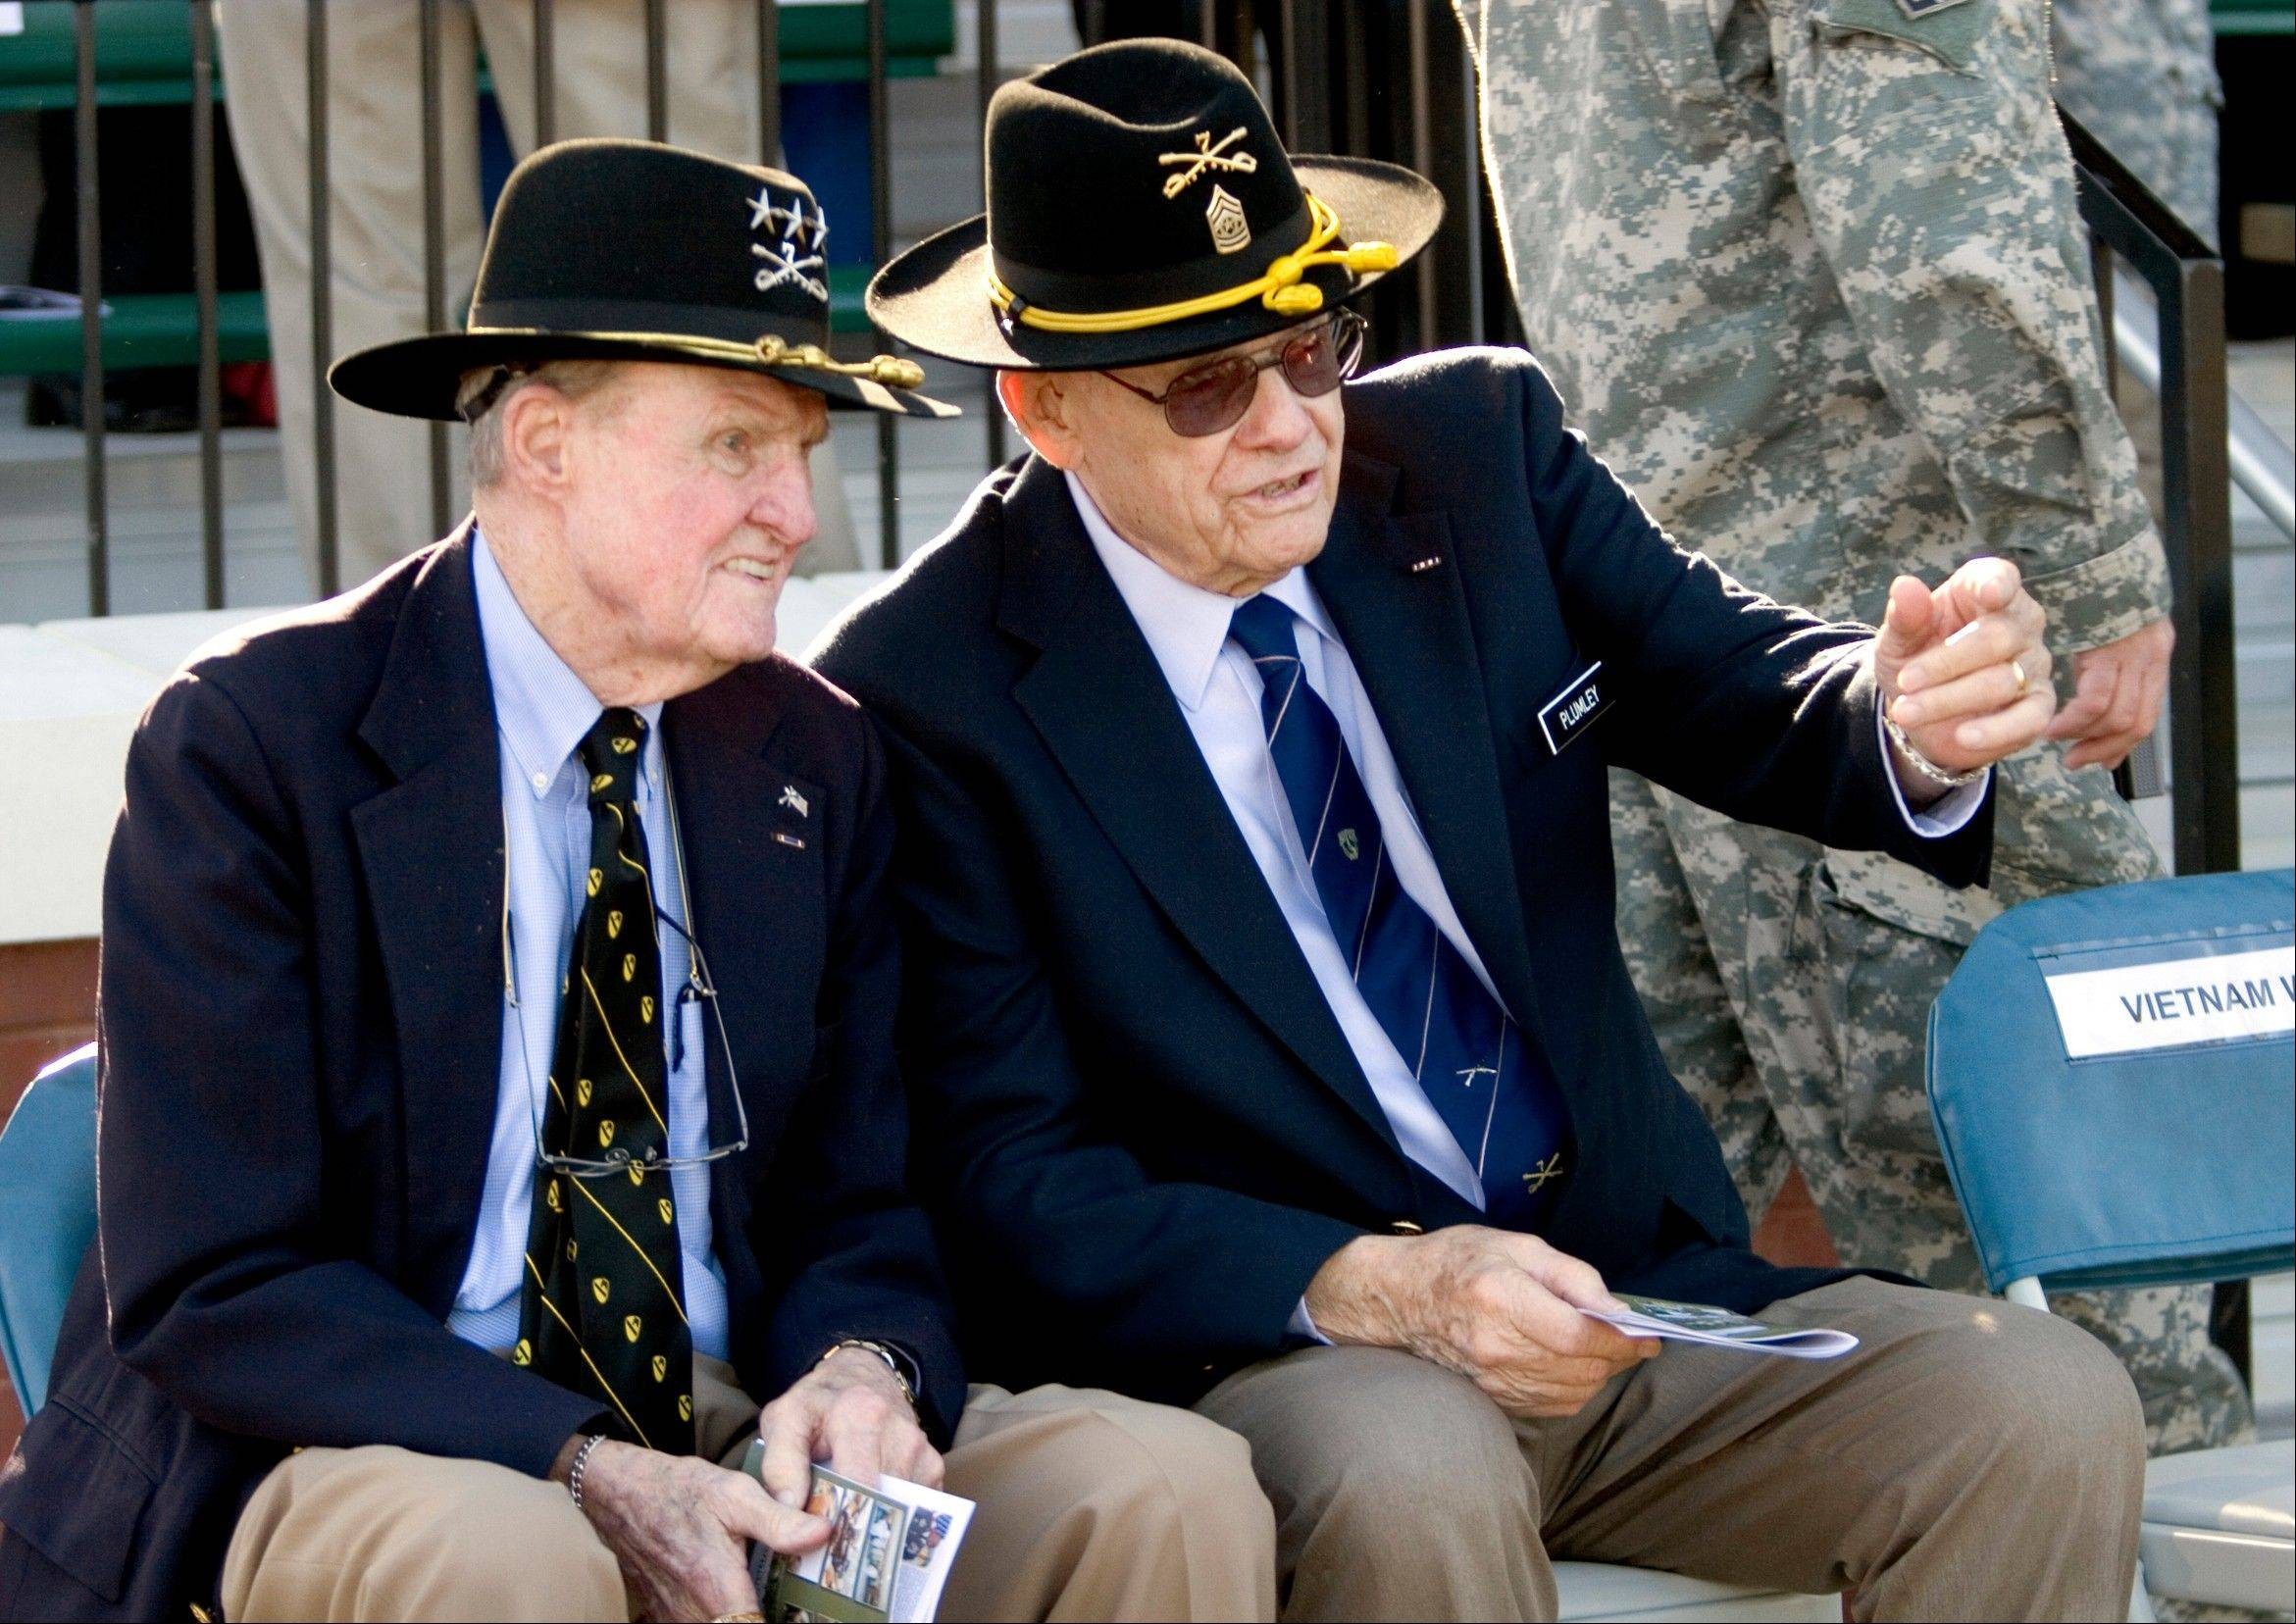 In a March 19, 2009 photo, retired Command Sgt. Maj. Basil L. Plumley, right, and retired Lt. Gen. Hal Moore, left, who served together with the 1st Cavalry Division in the Ia Drang Valley, talk at the National Infantry Museum and Soldier Center in Columbus, Ga. Plumley, 92, died Wednesday morning at the Columbus Hospice in Columbus, Ga.